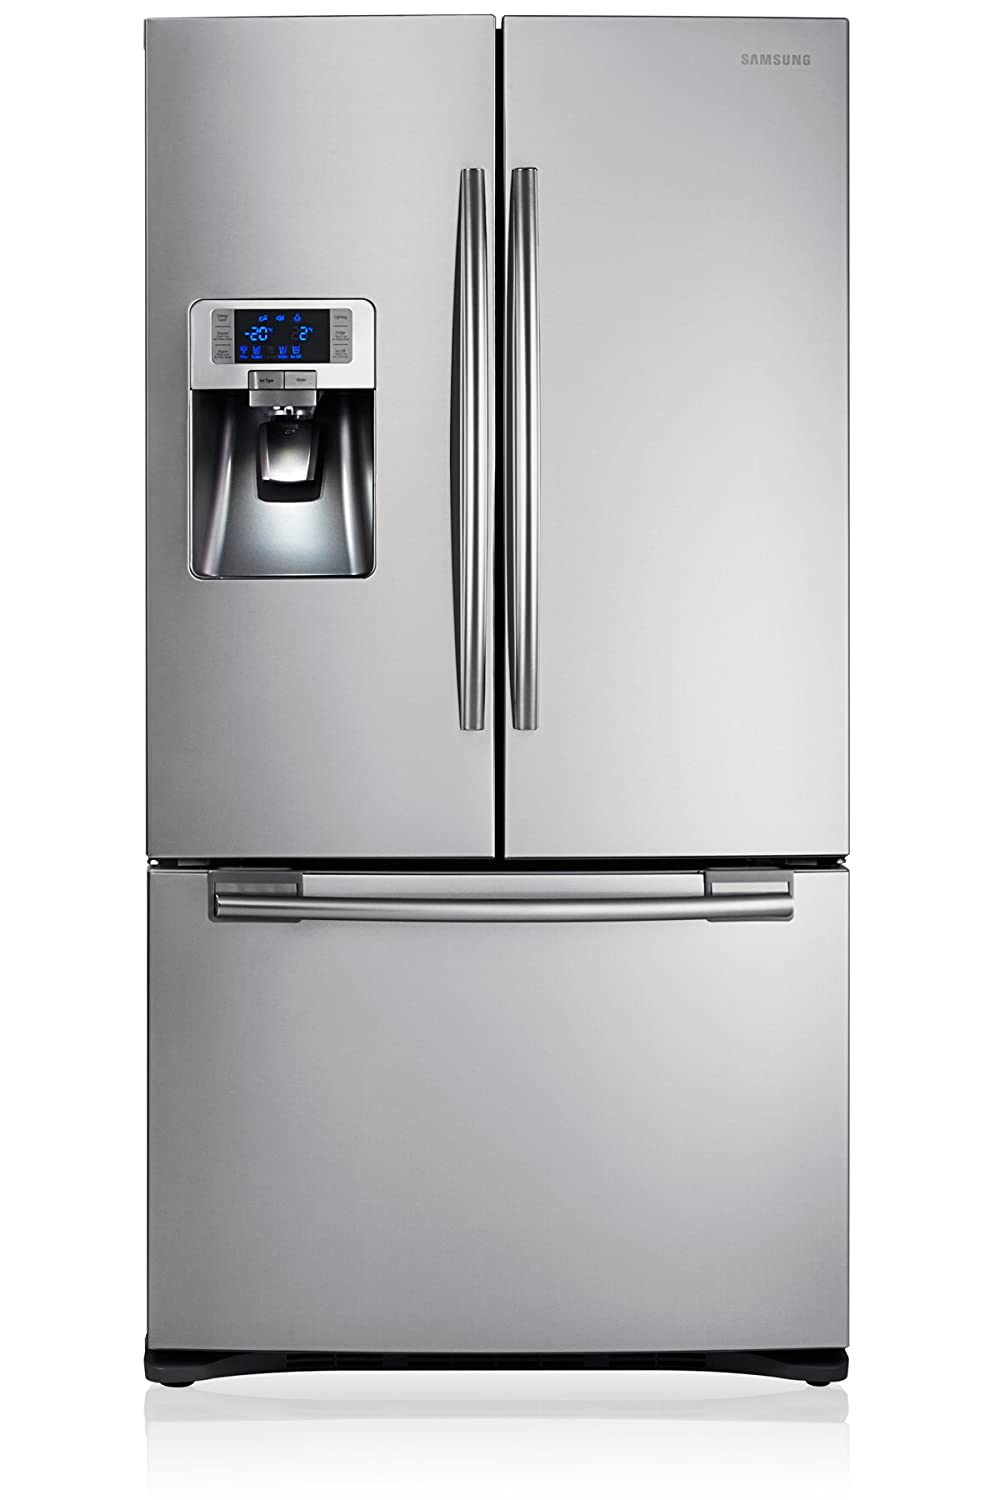 Samsung RFG23UERS - Frigorífico side-by-side (Independiente, Plata, Puerta francesa, 520 L, 630 L, SN, T) RFG23UERS1/XEF